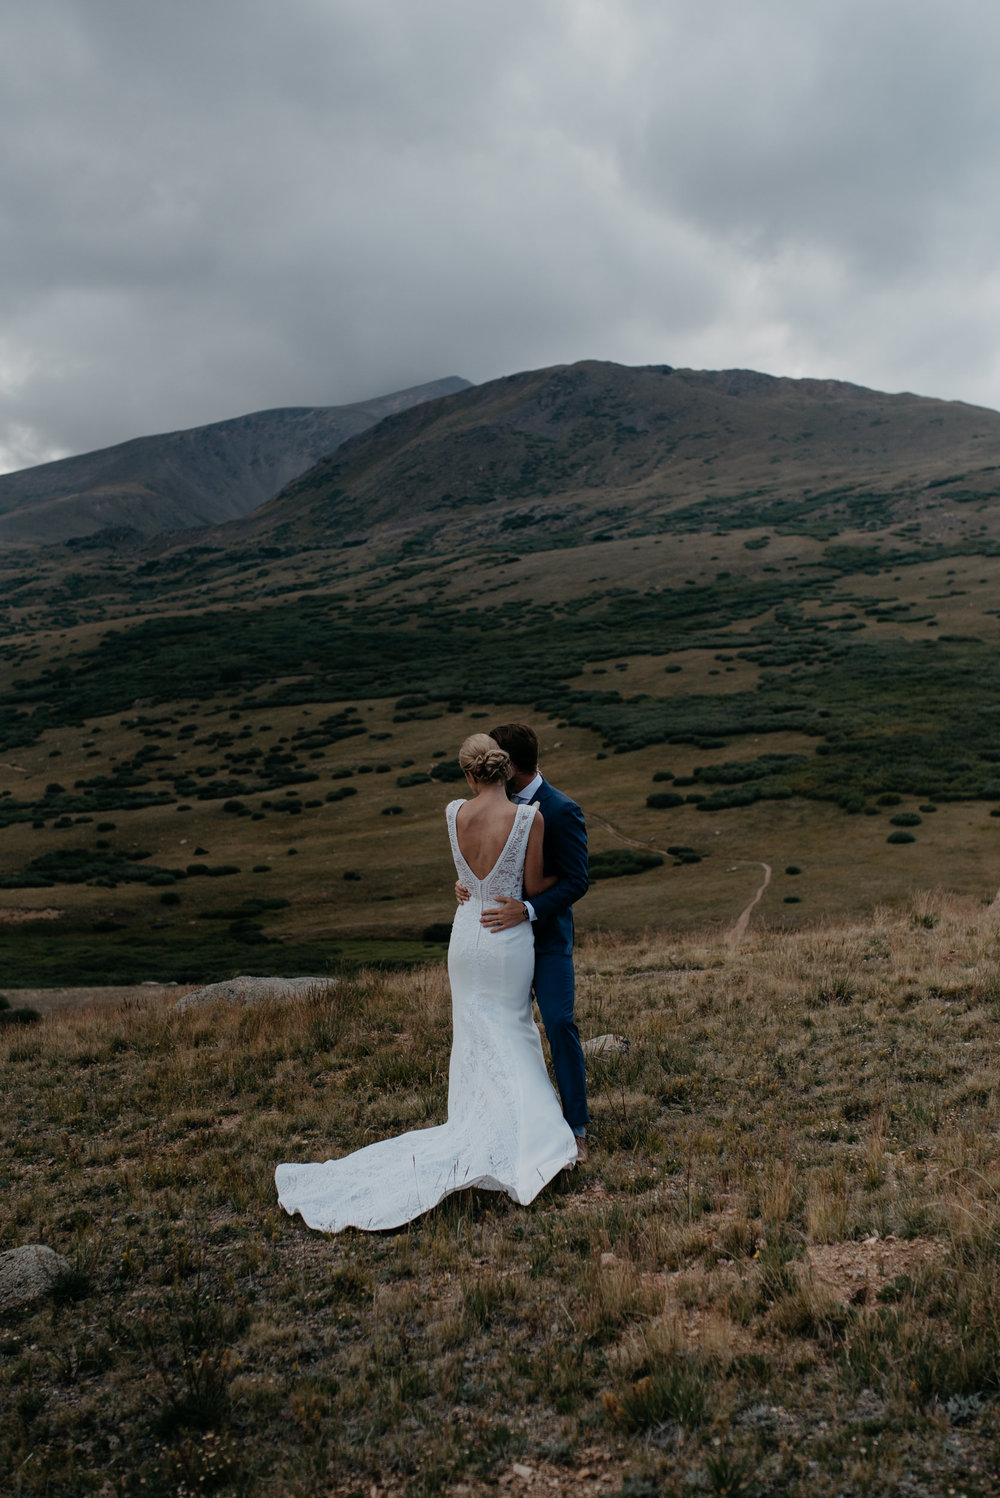 Colorado elopement at Guenella Pass. Colorado based elopement and wedding photographer. Colorado adventure elopement in Georgetown.